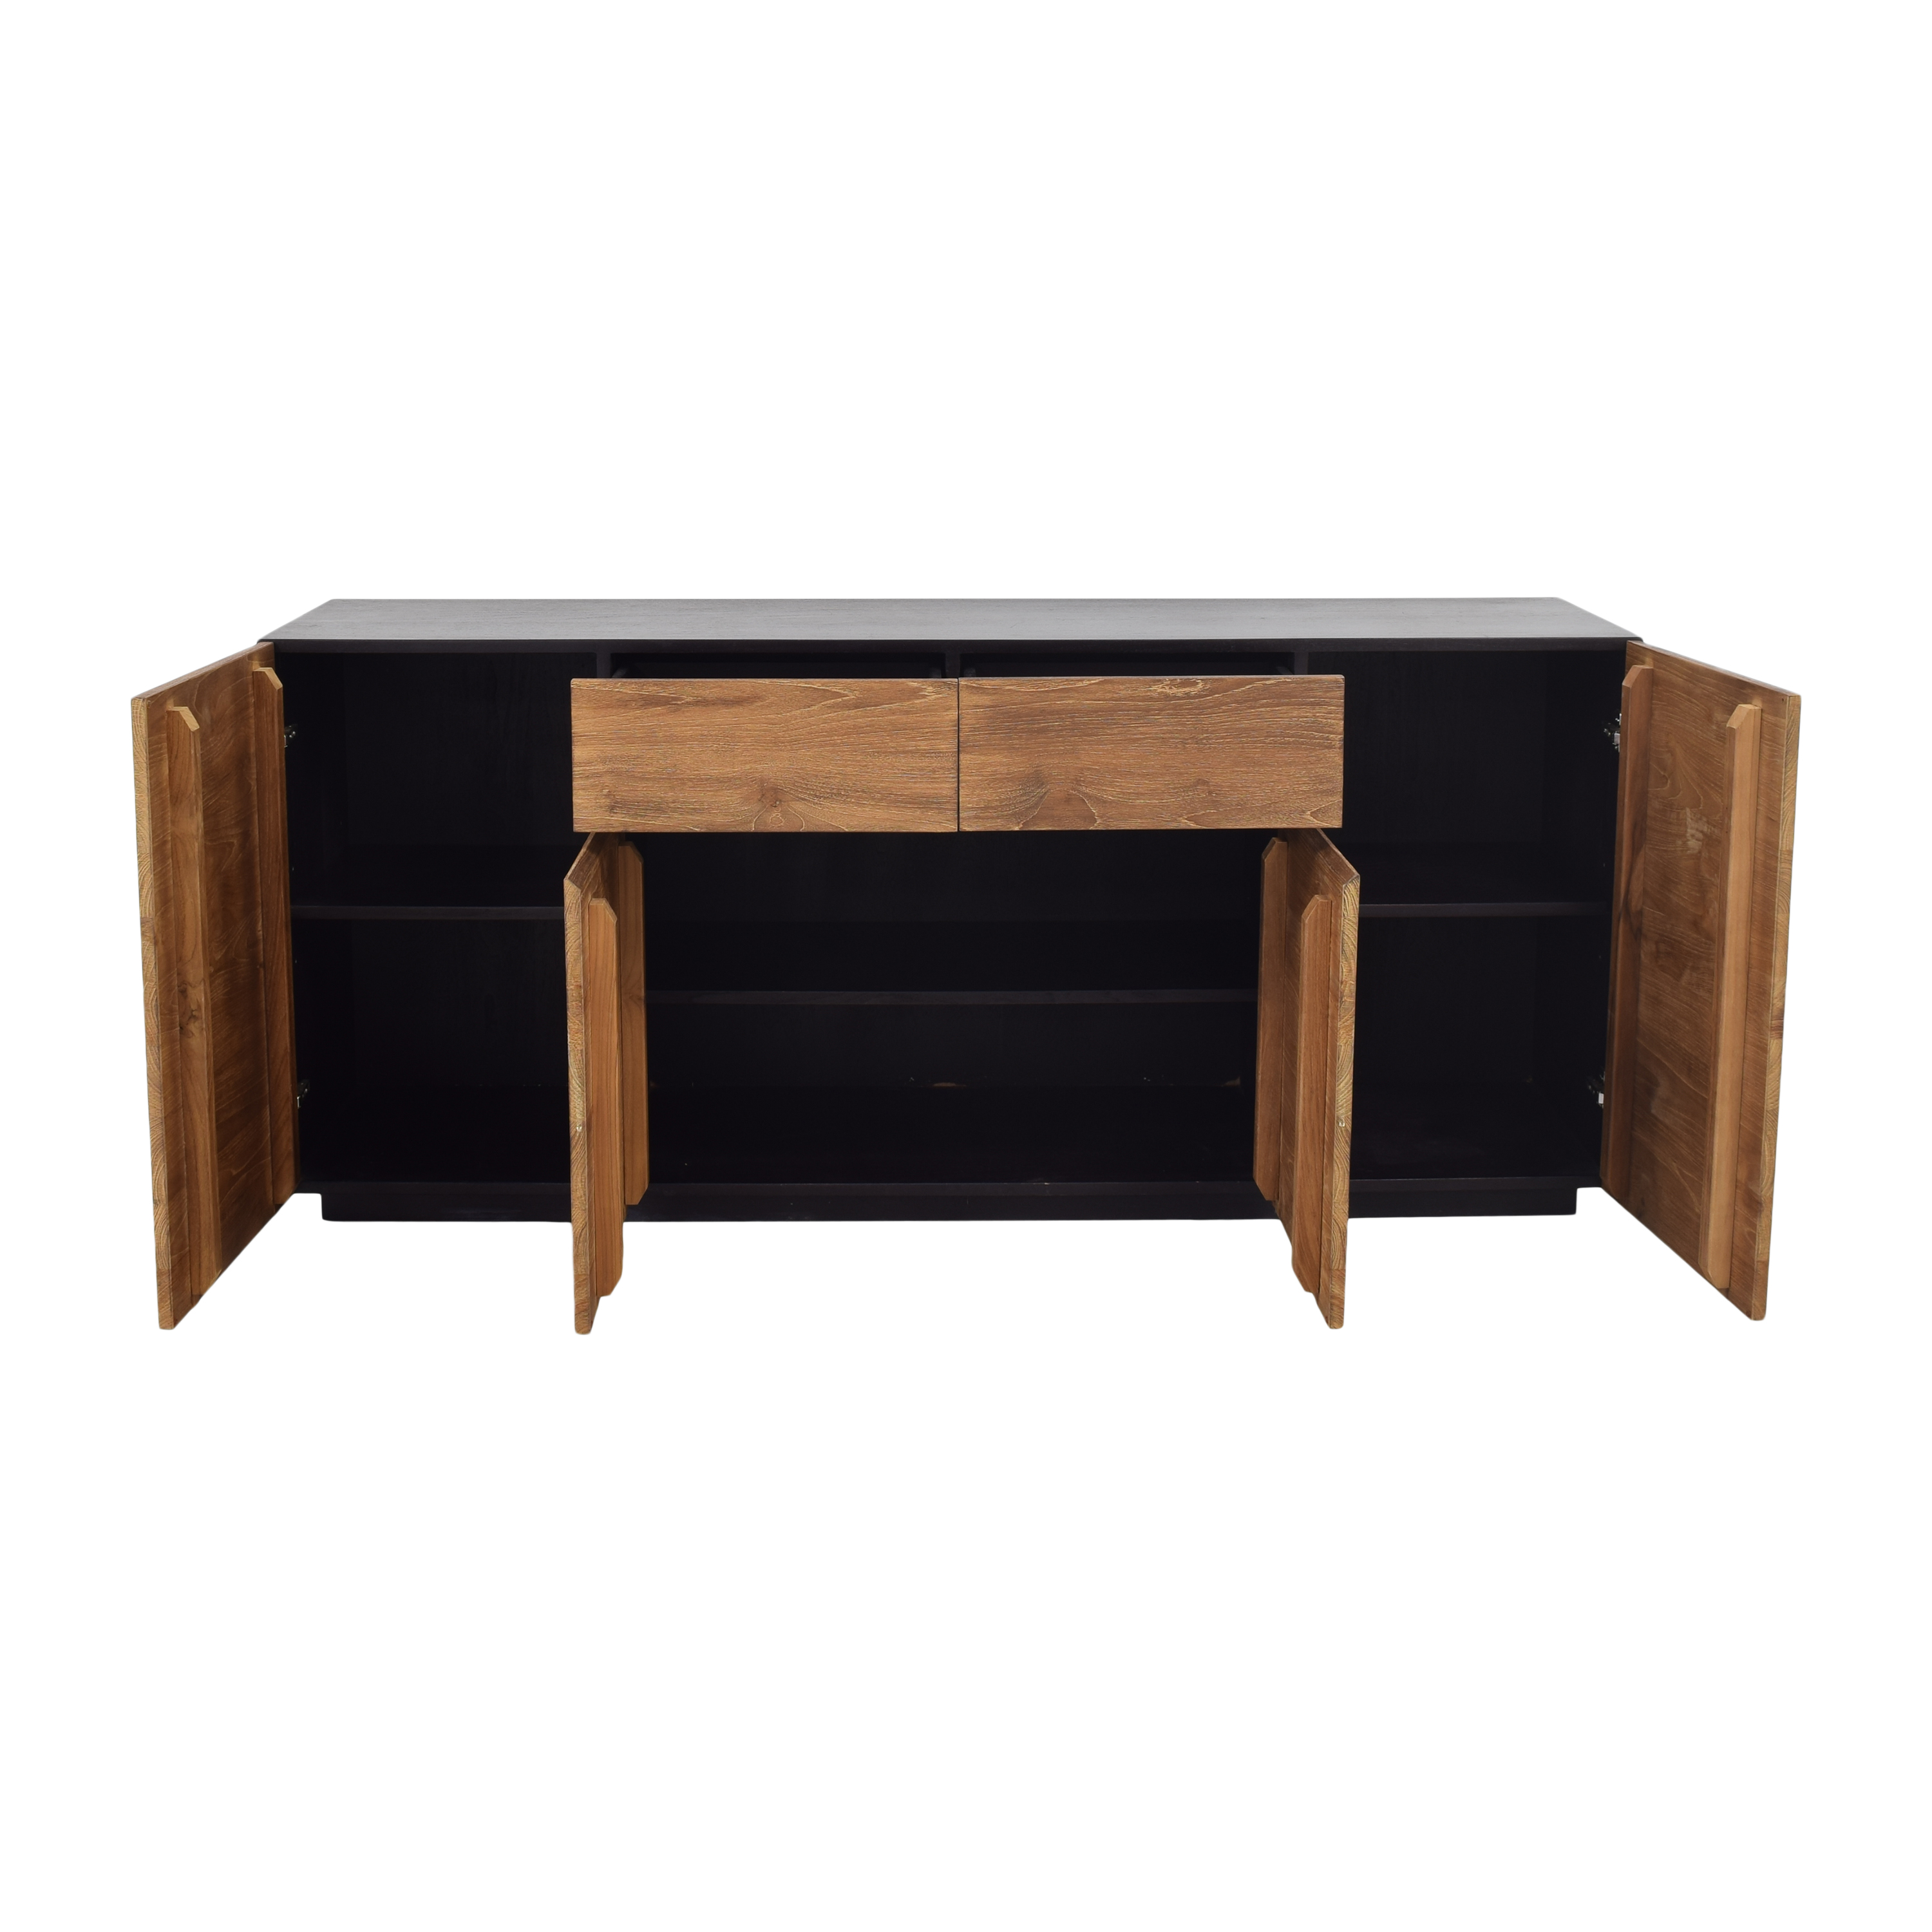 ABC Carpet & Home ABC Carpet & Home Four Door Sideboard brown and black